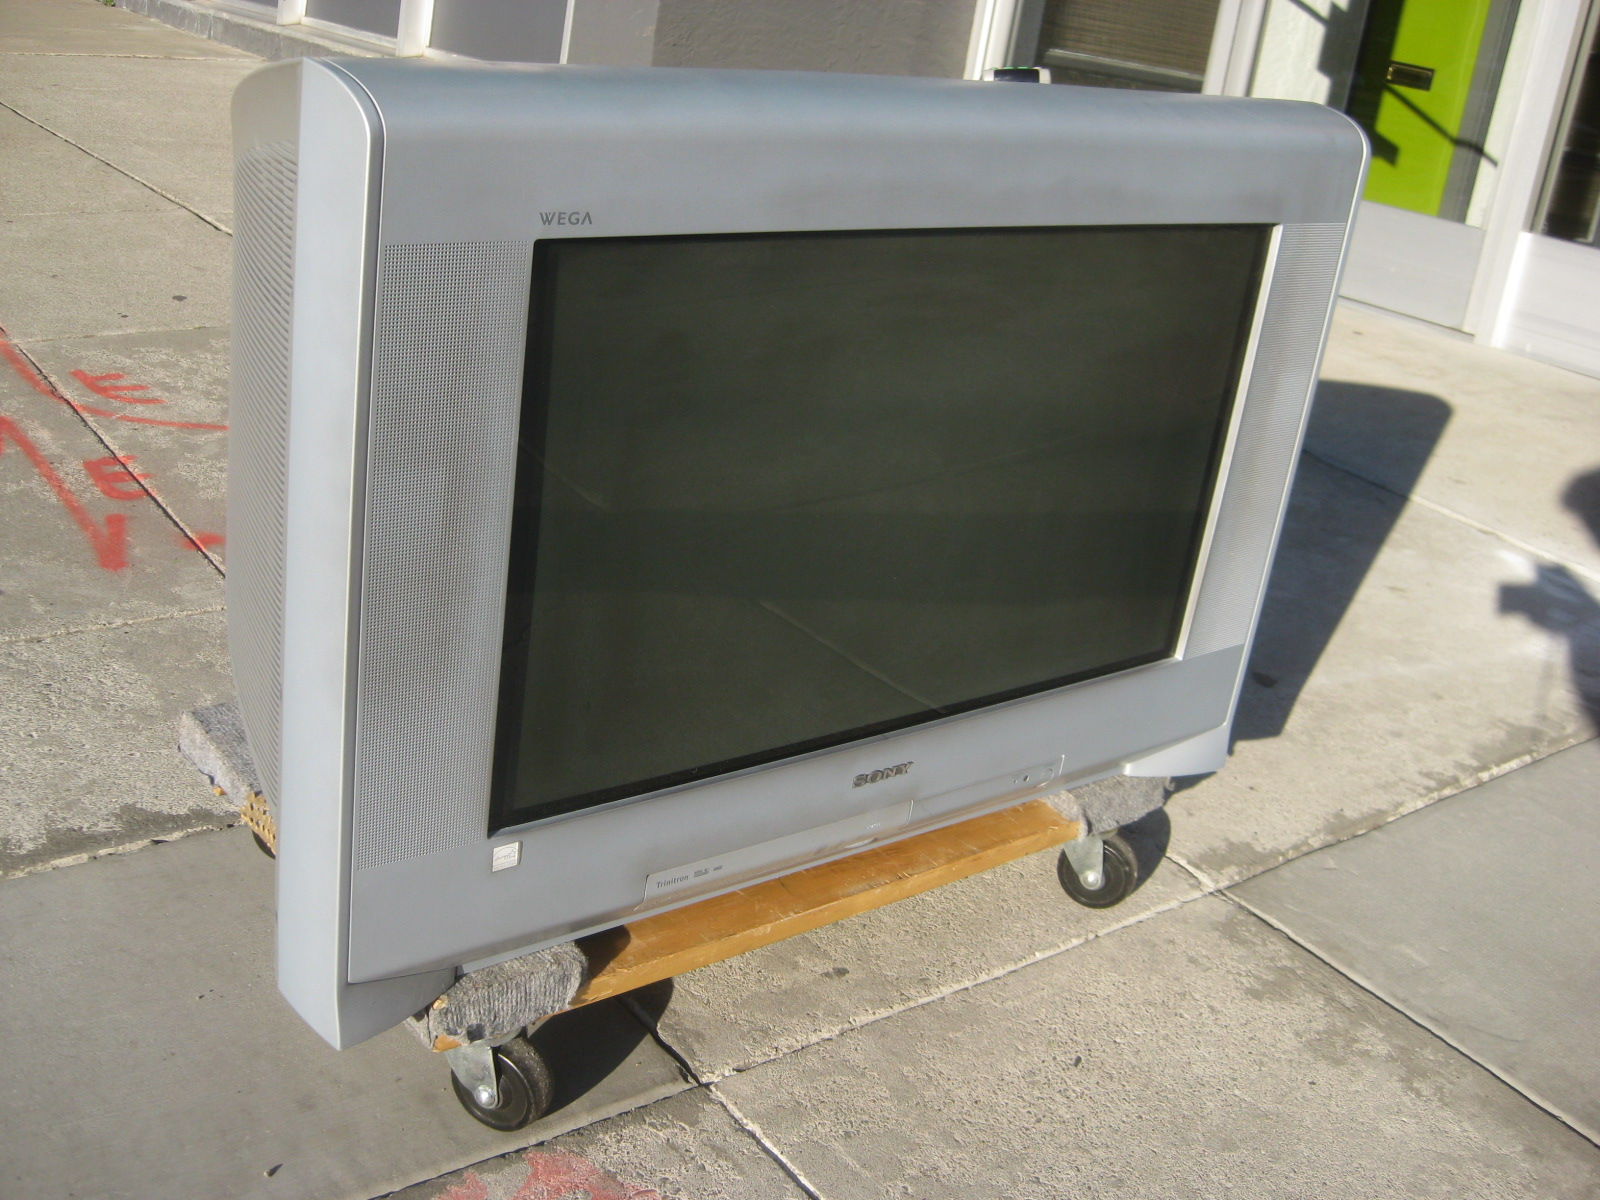 2005 Sony Wega TV http://uhurufurniture.blogspot.com/2010/09/2005-sony-wega-trinitron-32-tv-150.html